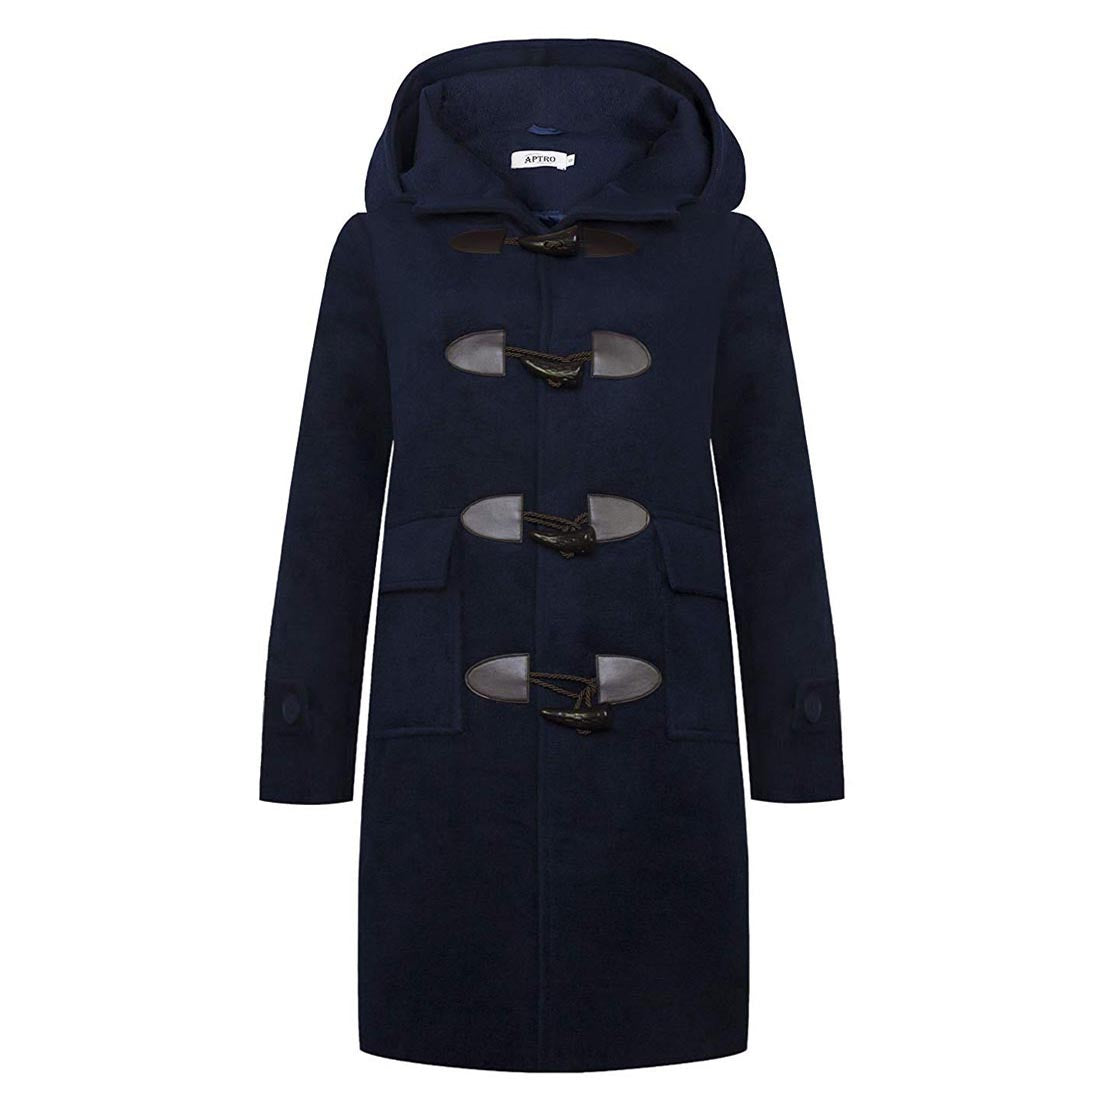 Womens Winter Casual Hooded Wool Trench Coat Long Overcoat Aptro